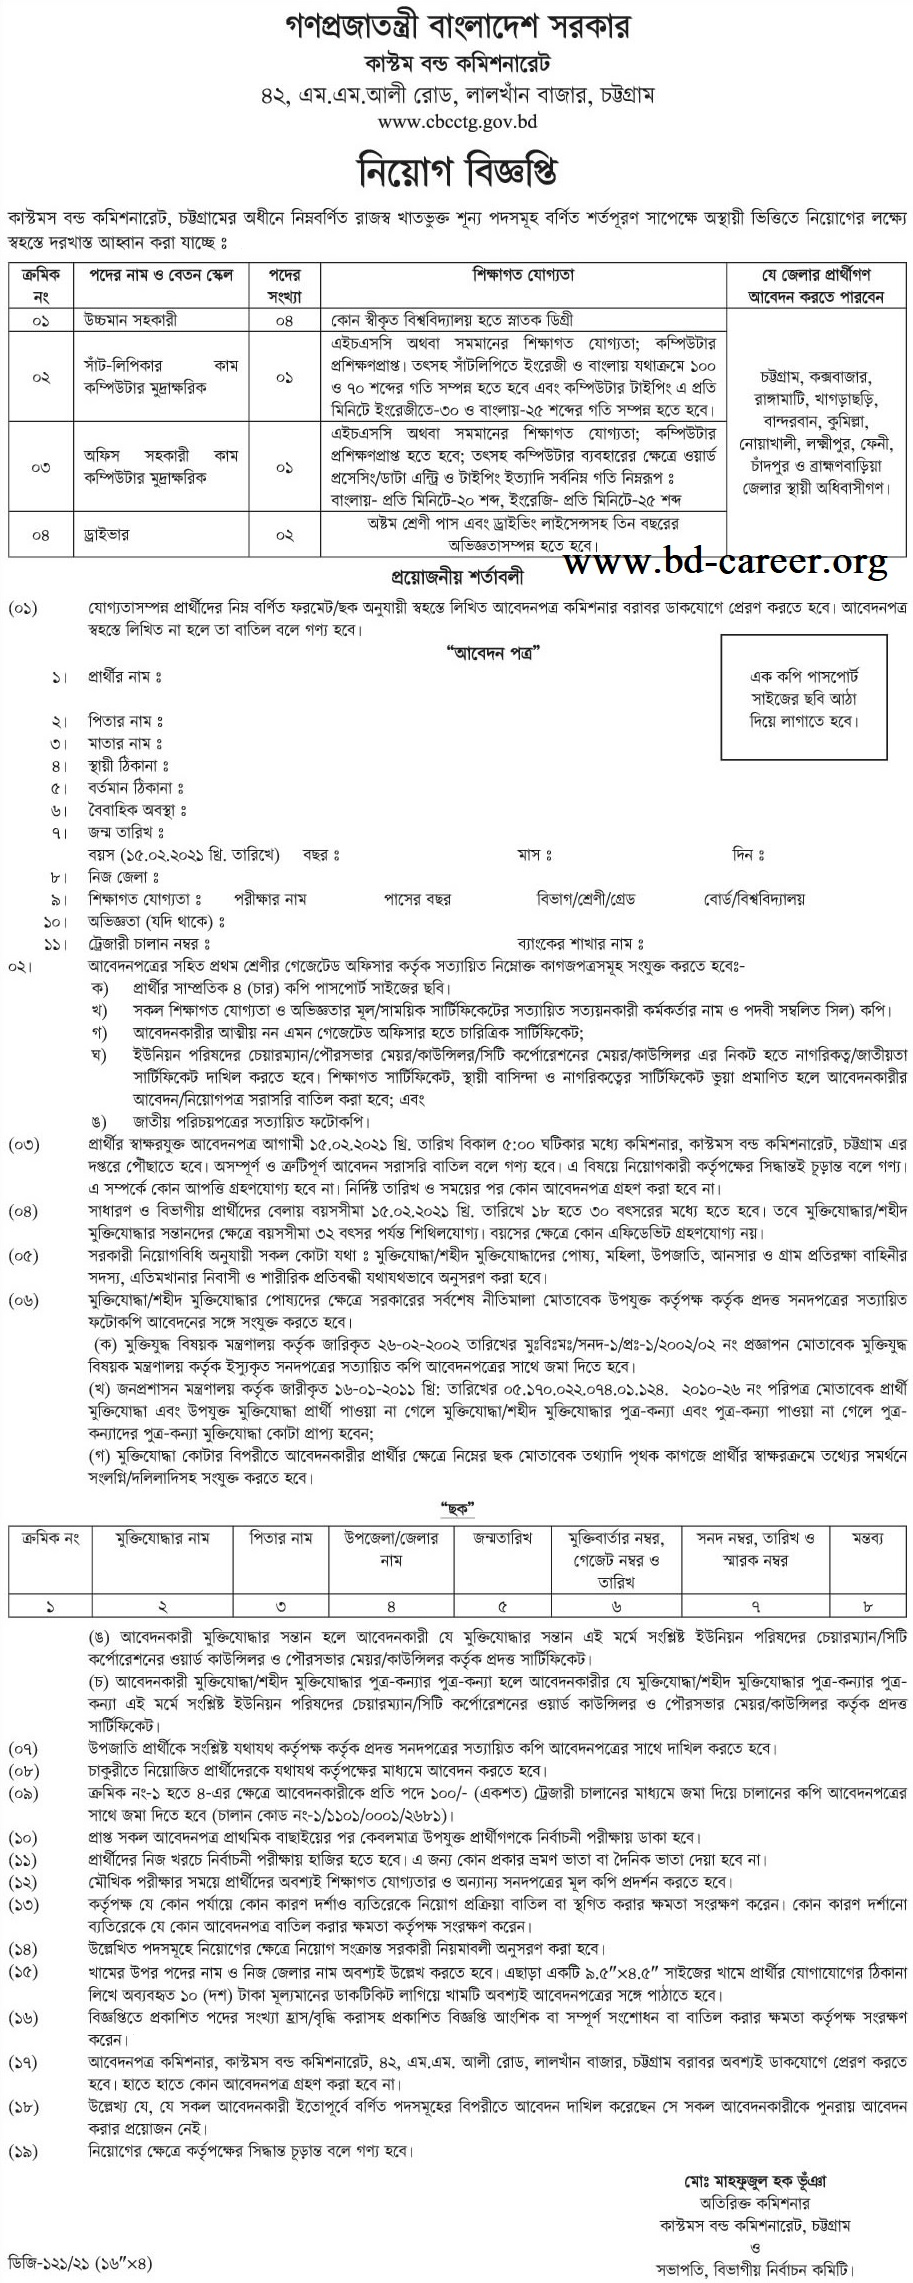 CBC Job Circular Apply 2021